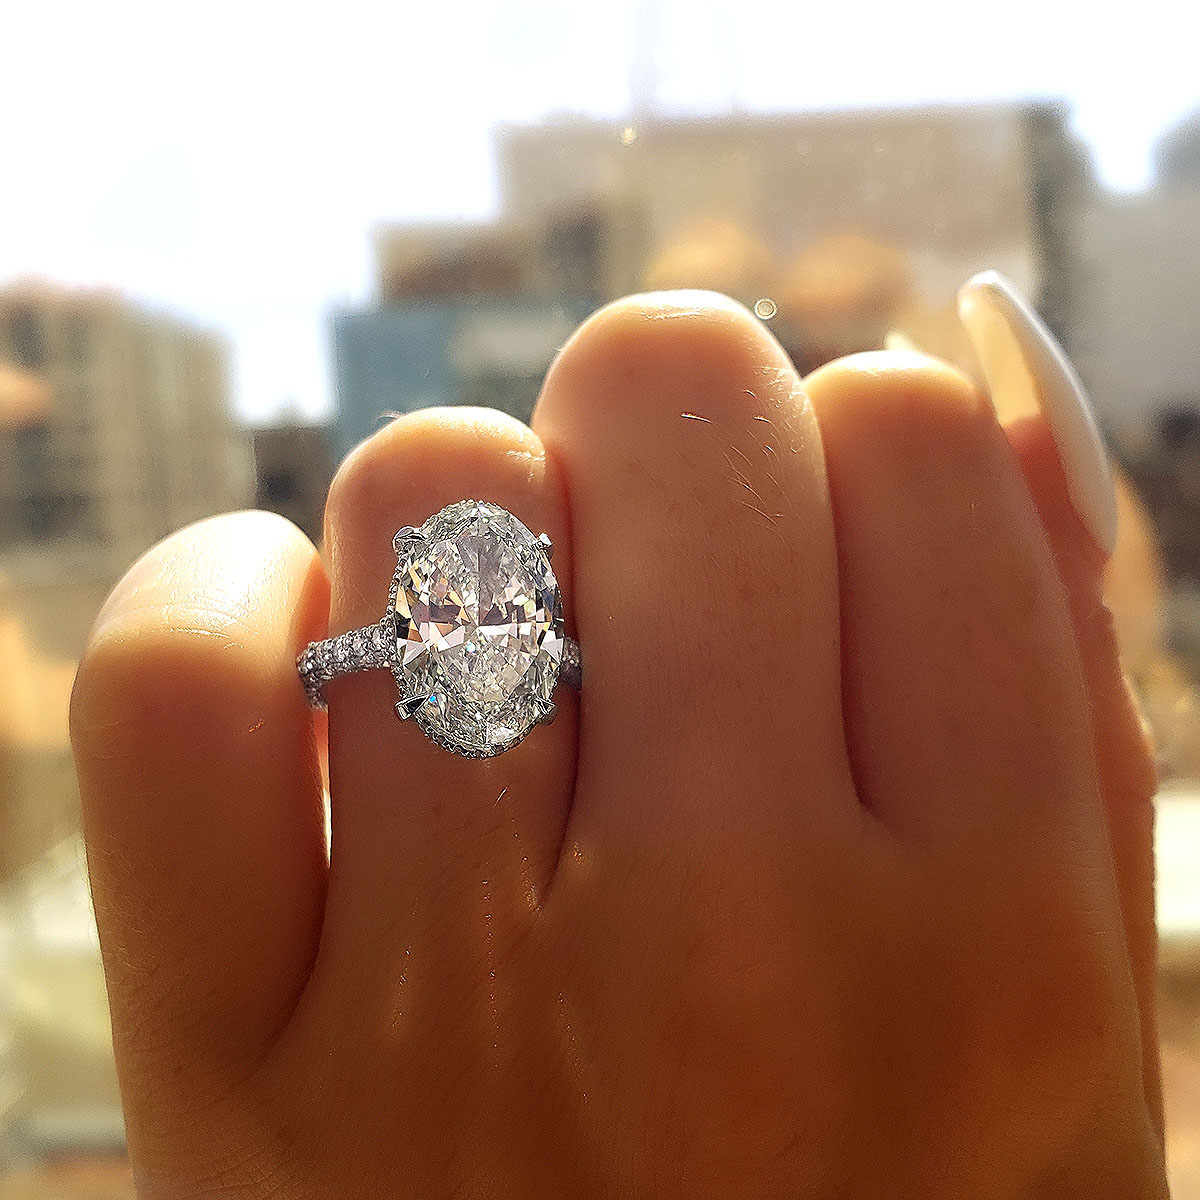 Brilliant Oval Cut Diamond Engagement Ring Designed by Diamond Mansion